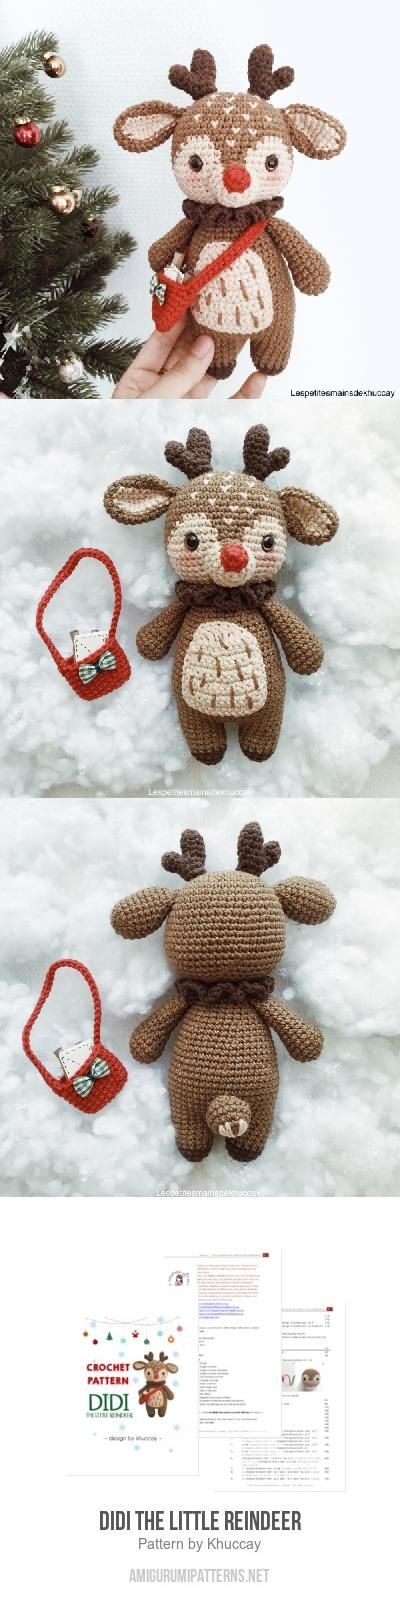 Didi the little reindeer amigurumi pattern